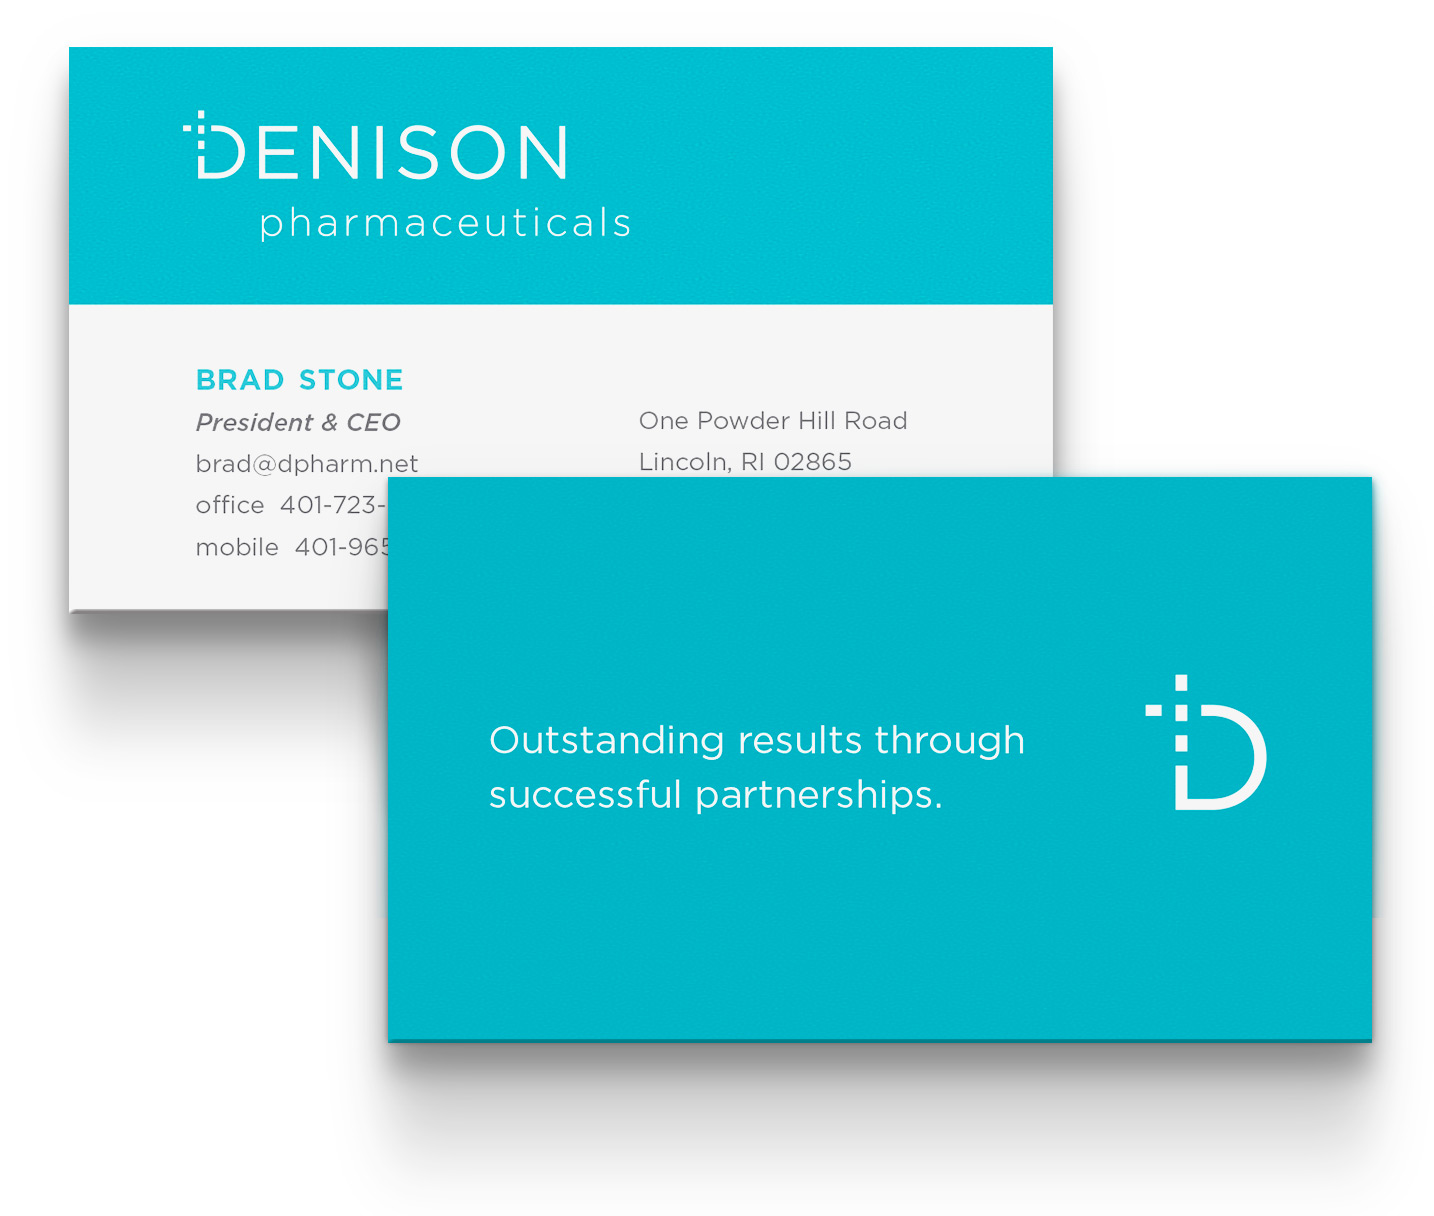 business card design: Denison Pharmaceuticals, Lincoln, RI